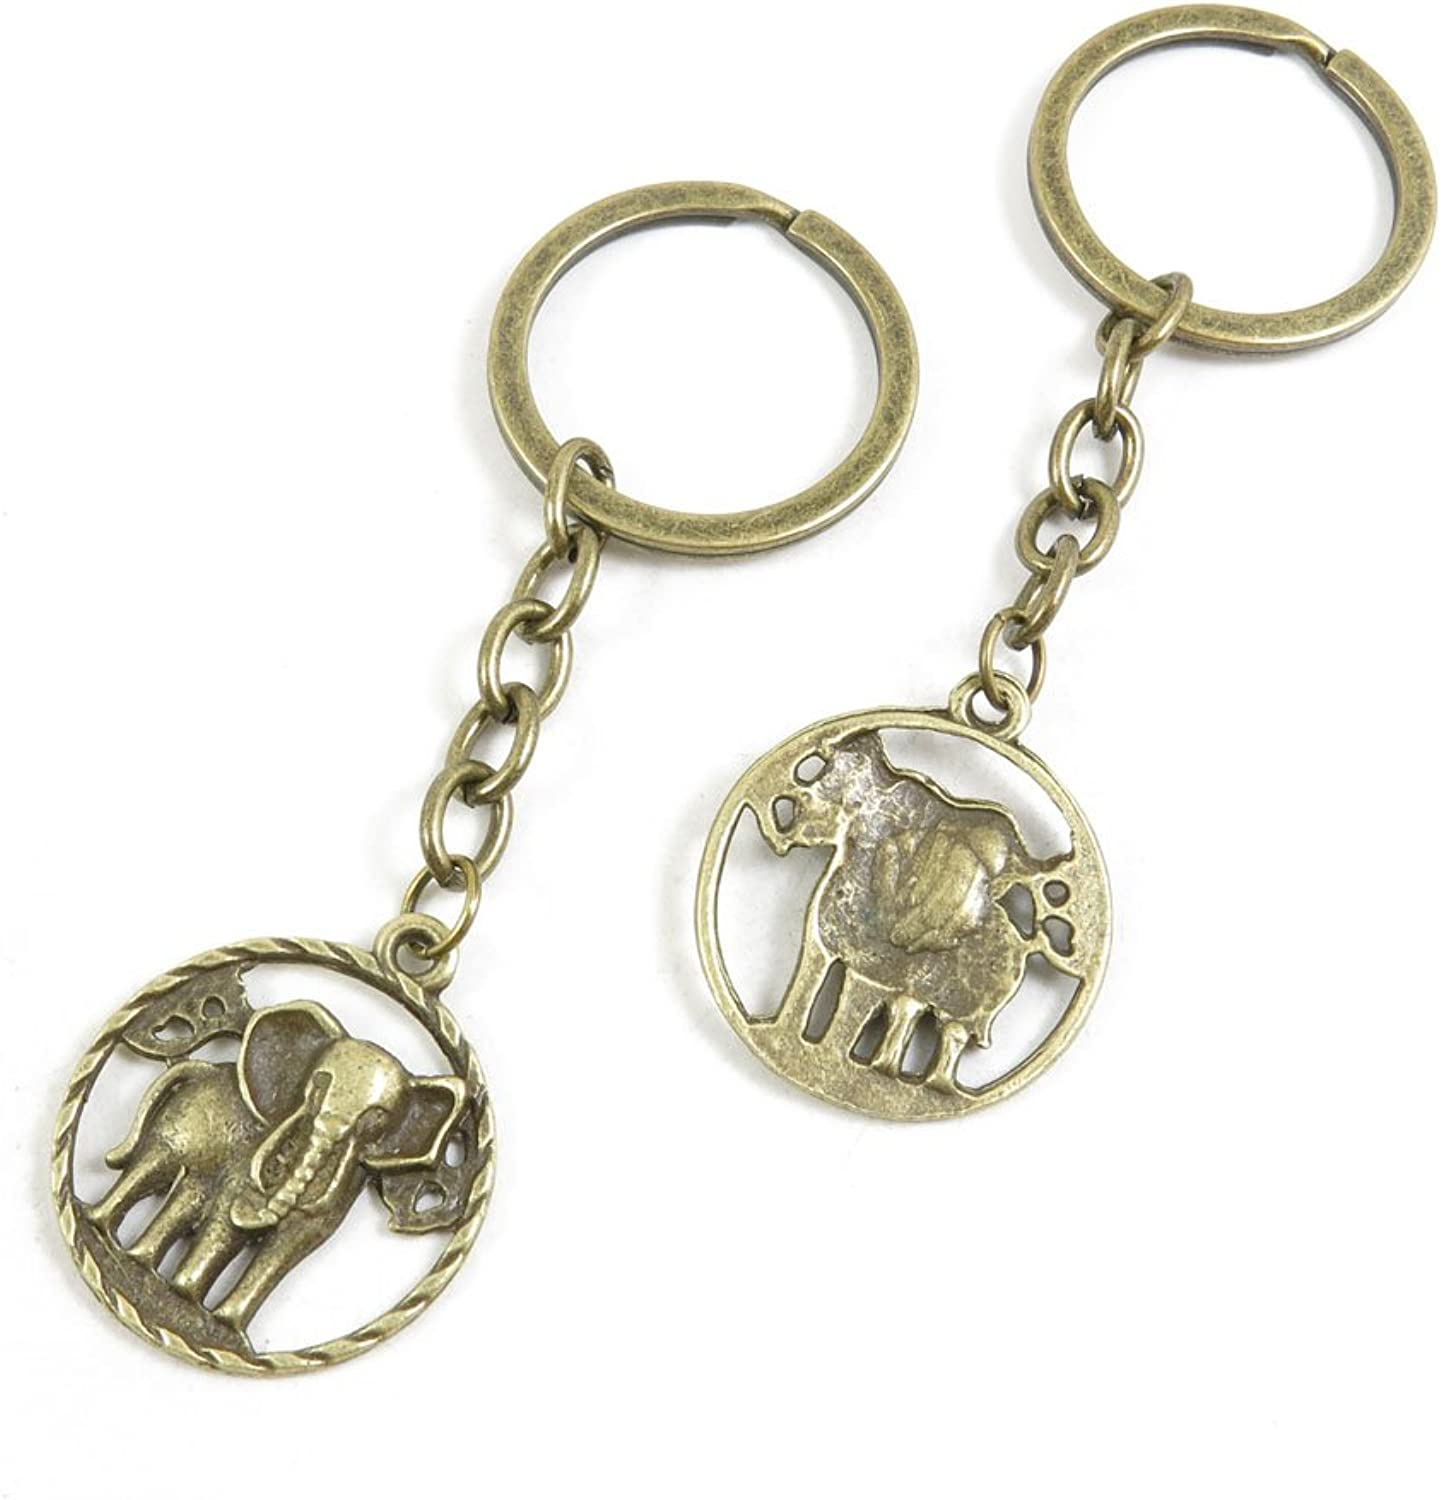 180 Pieces Fashion Jewelry Keyring Keychain Door Car Key Tag Ring Chain Supplier Supply Wholesale Bulk Lots W3HX9 Elephant Tag Signs